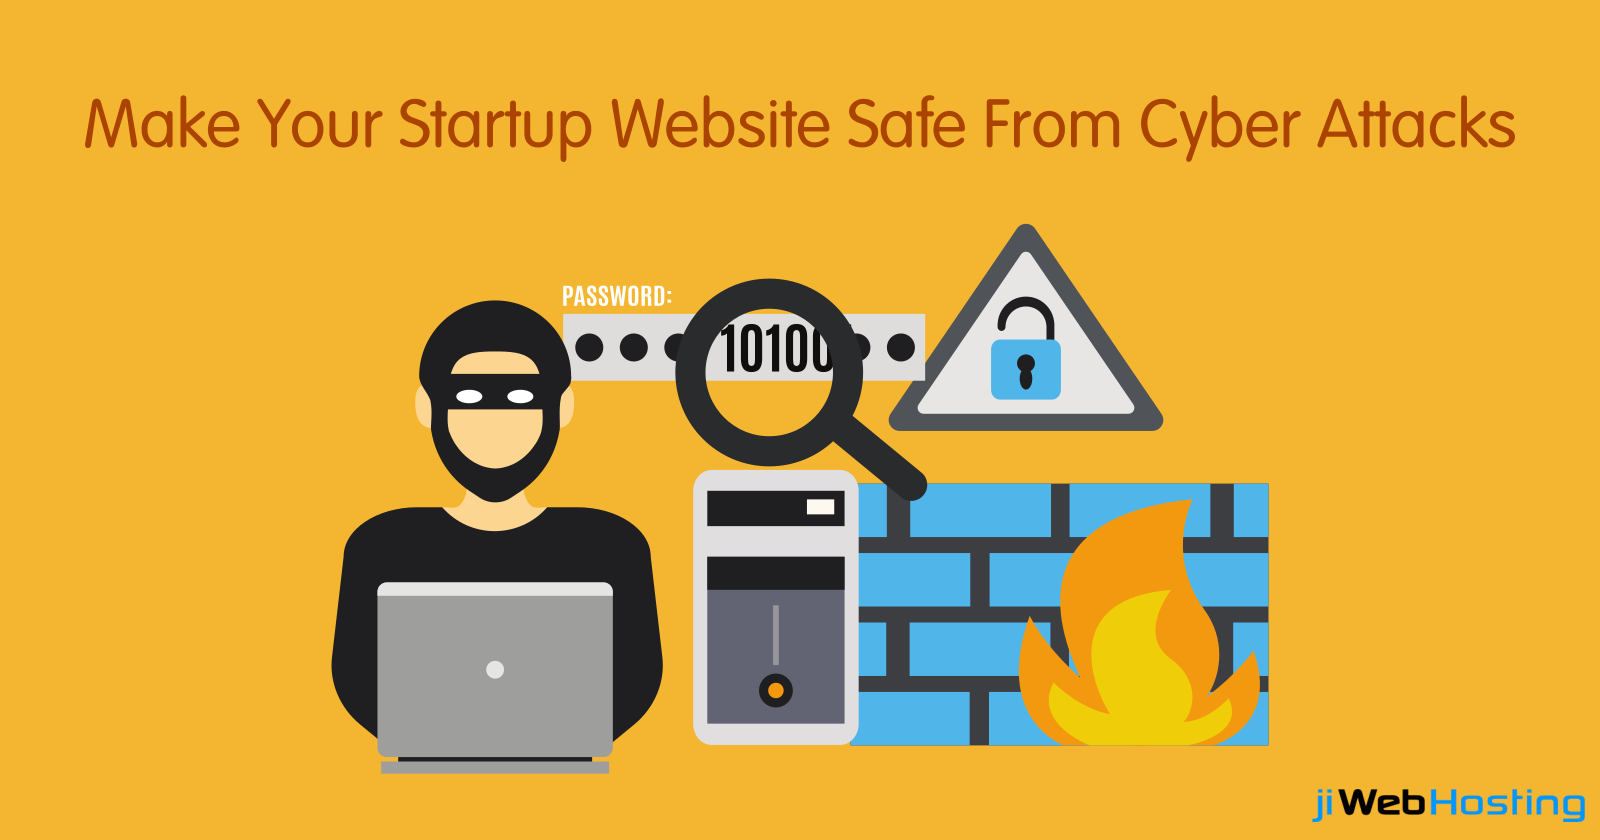 Tips to Protect your Startup Website from Cyber Attacks